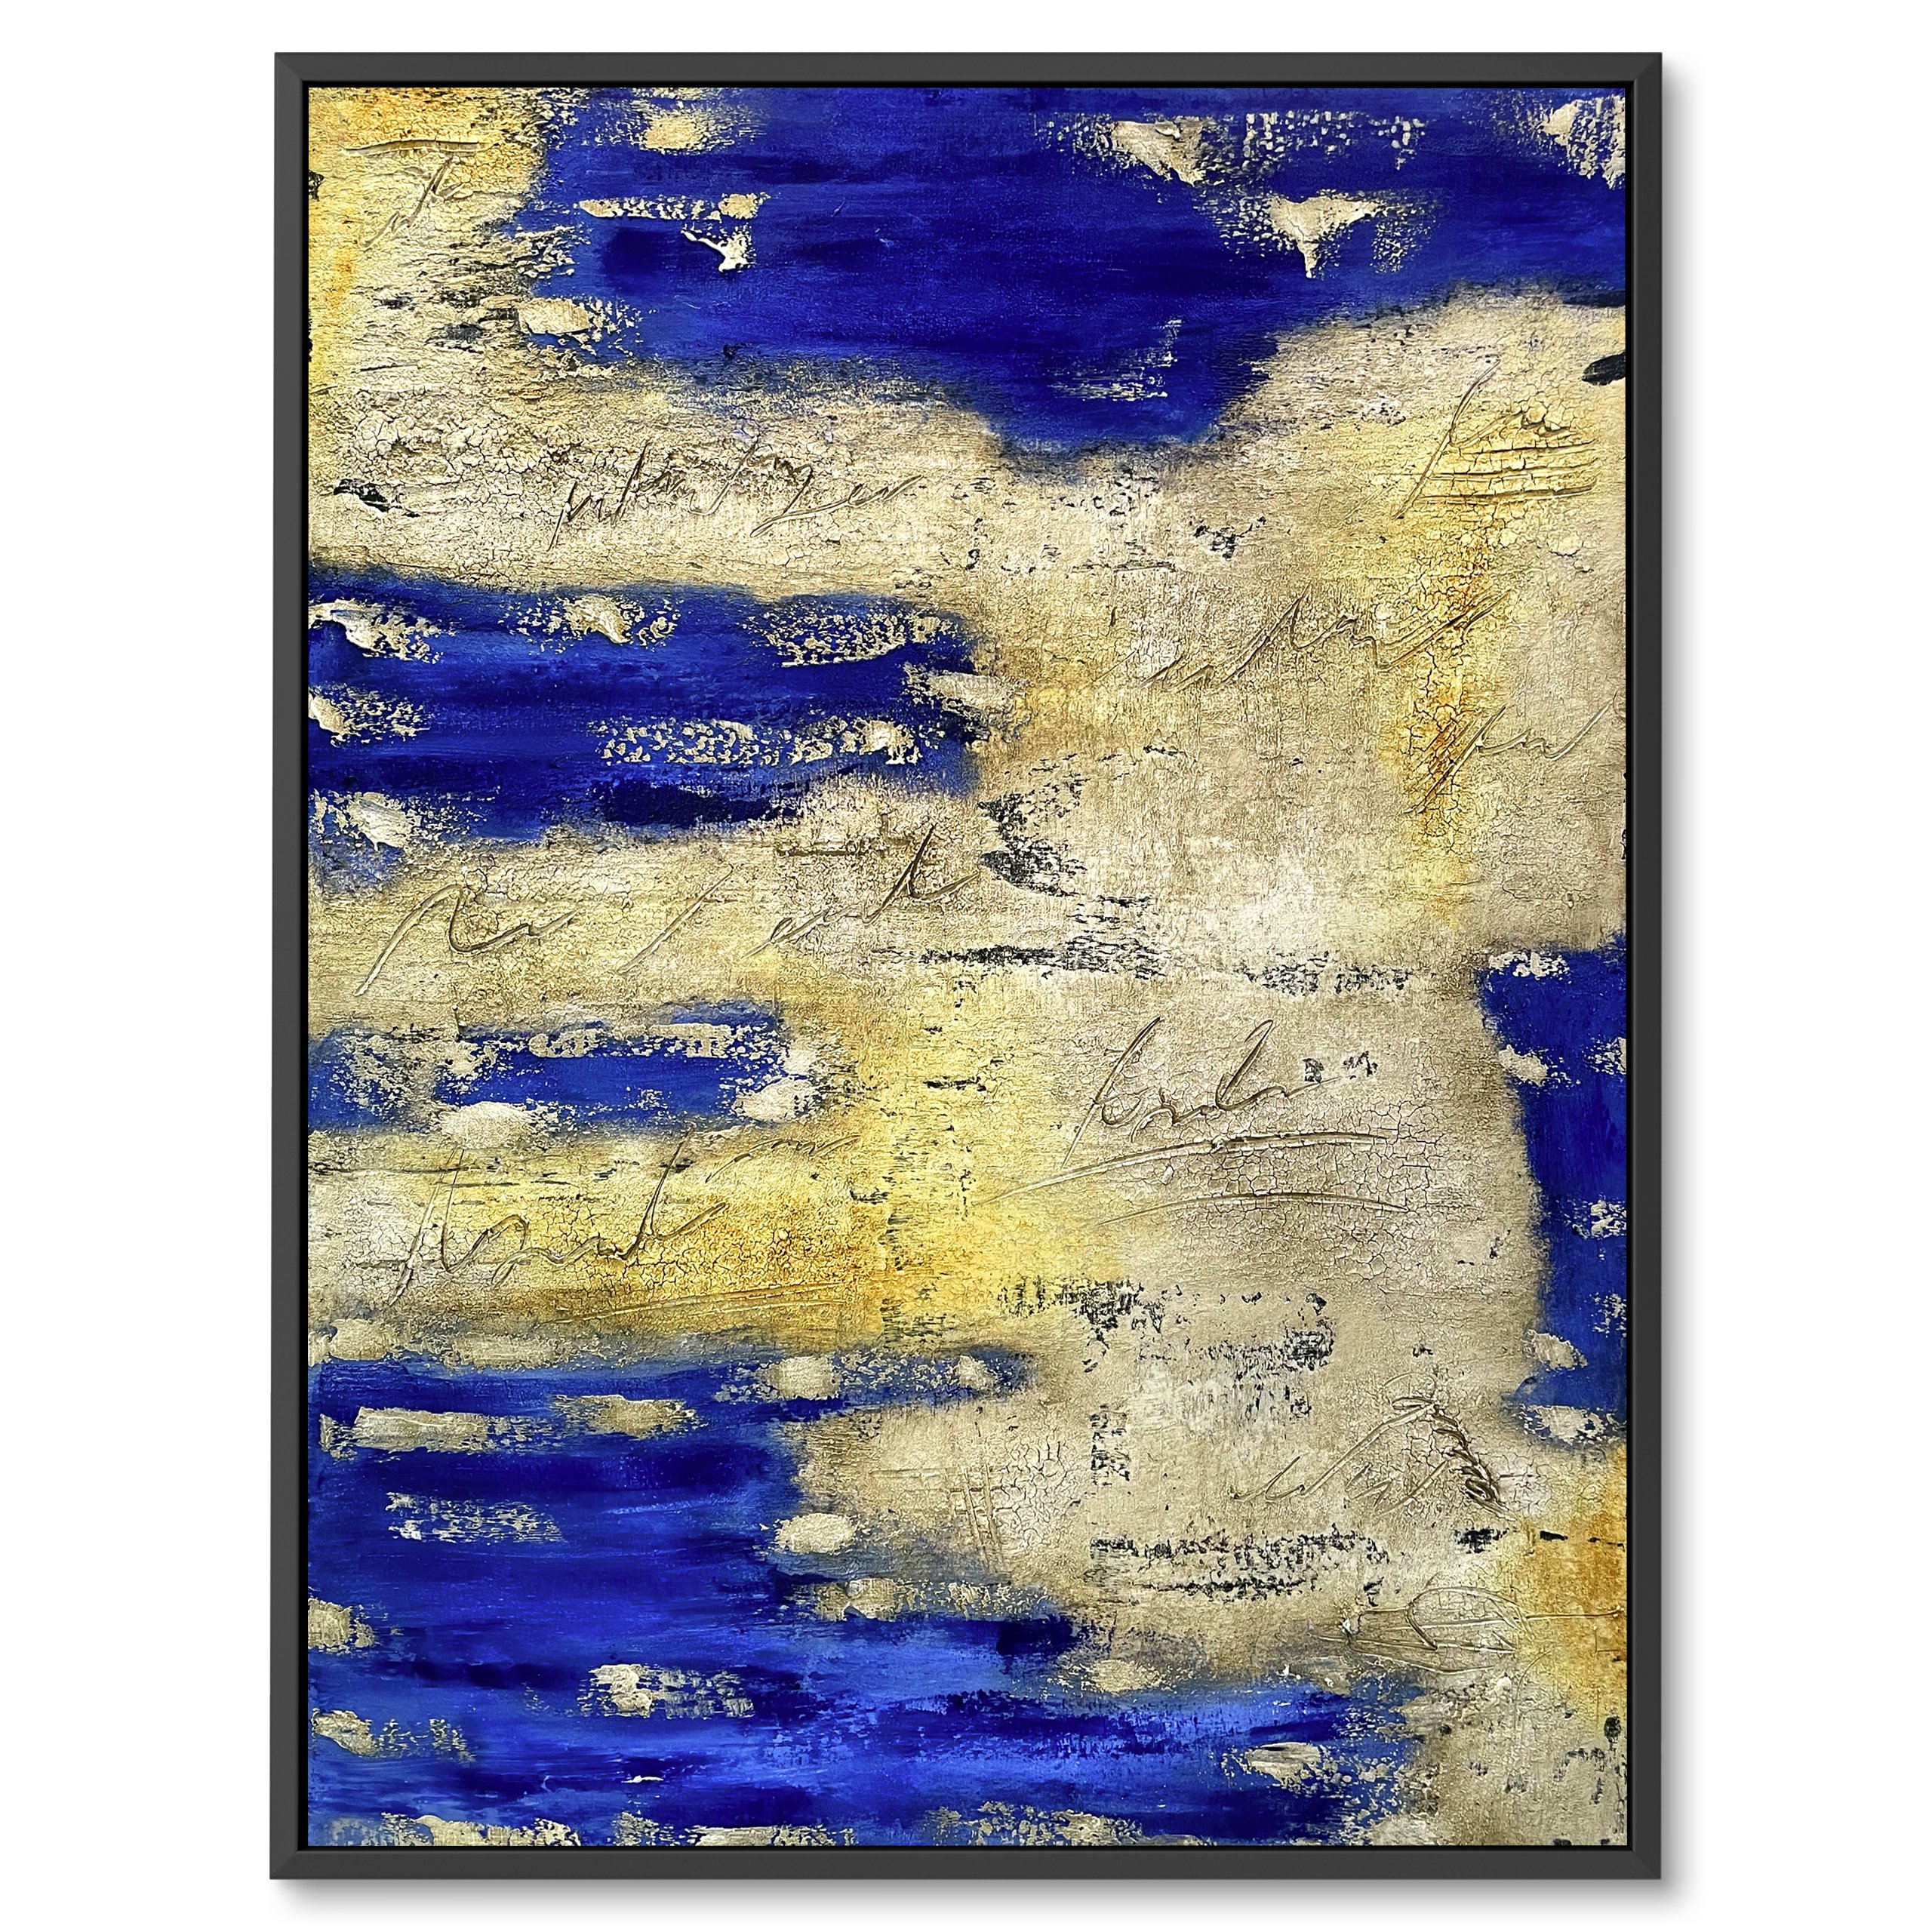 Modern abstract art, Dark blue, Navy, Leather like painting for interior design